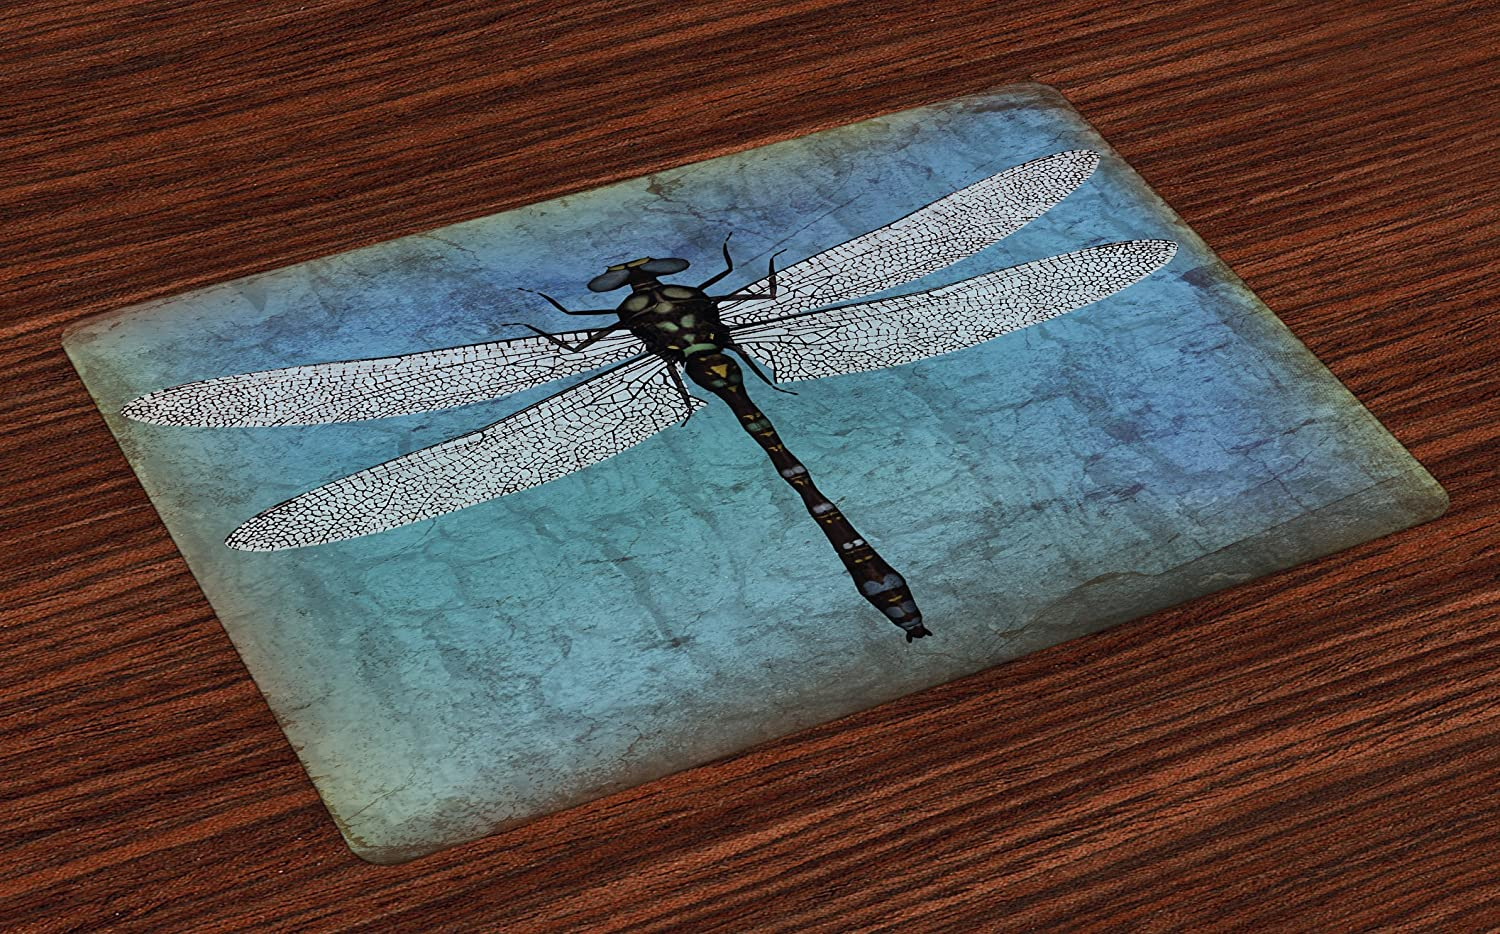 Ambesonne Dragonfly Place Mats Set of 4, Grunge Vintage Old Backdrop and Dragonfly Bug Ombre Image, Washable Fabric Placemats for Dining Room Kitchen Table Decor, Blue Turquoise